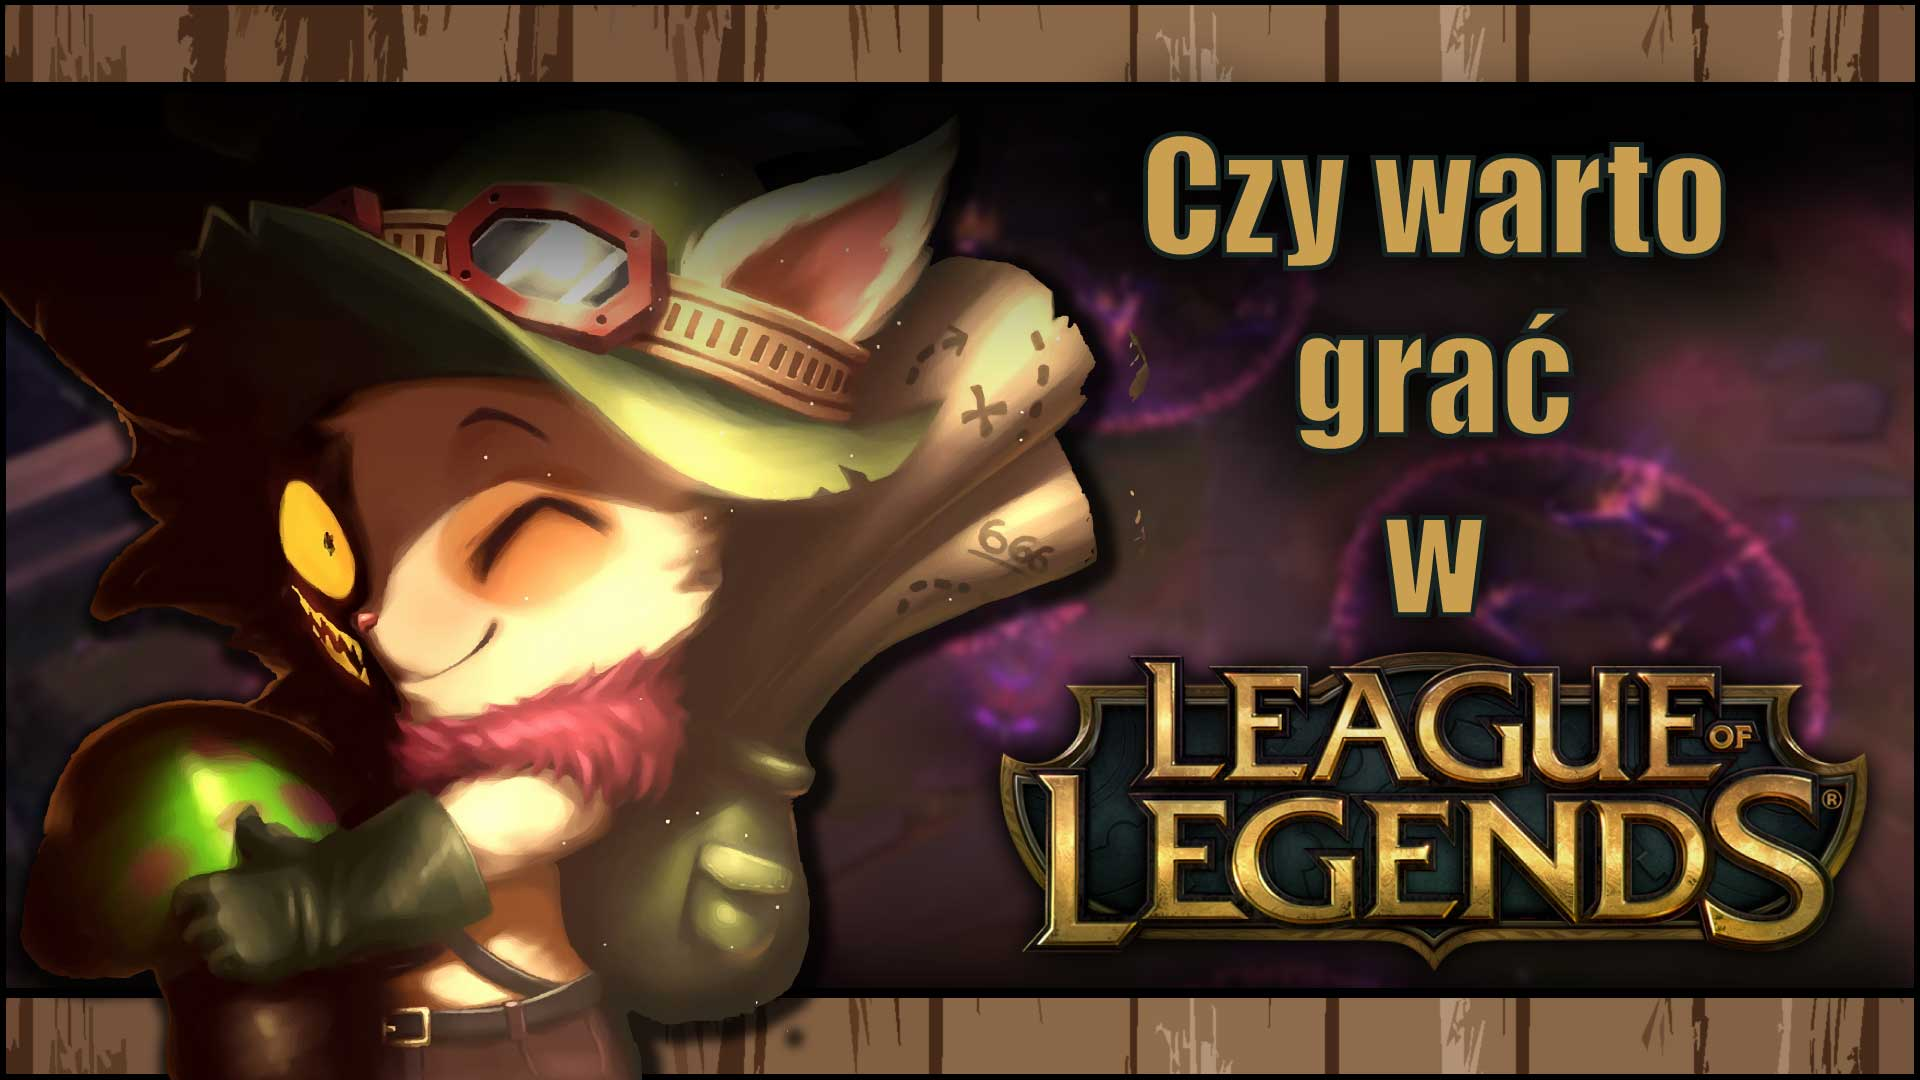 Czy warto grać w League of Legends?